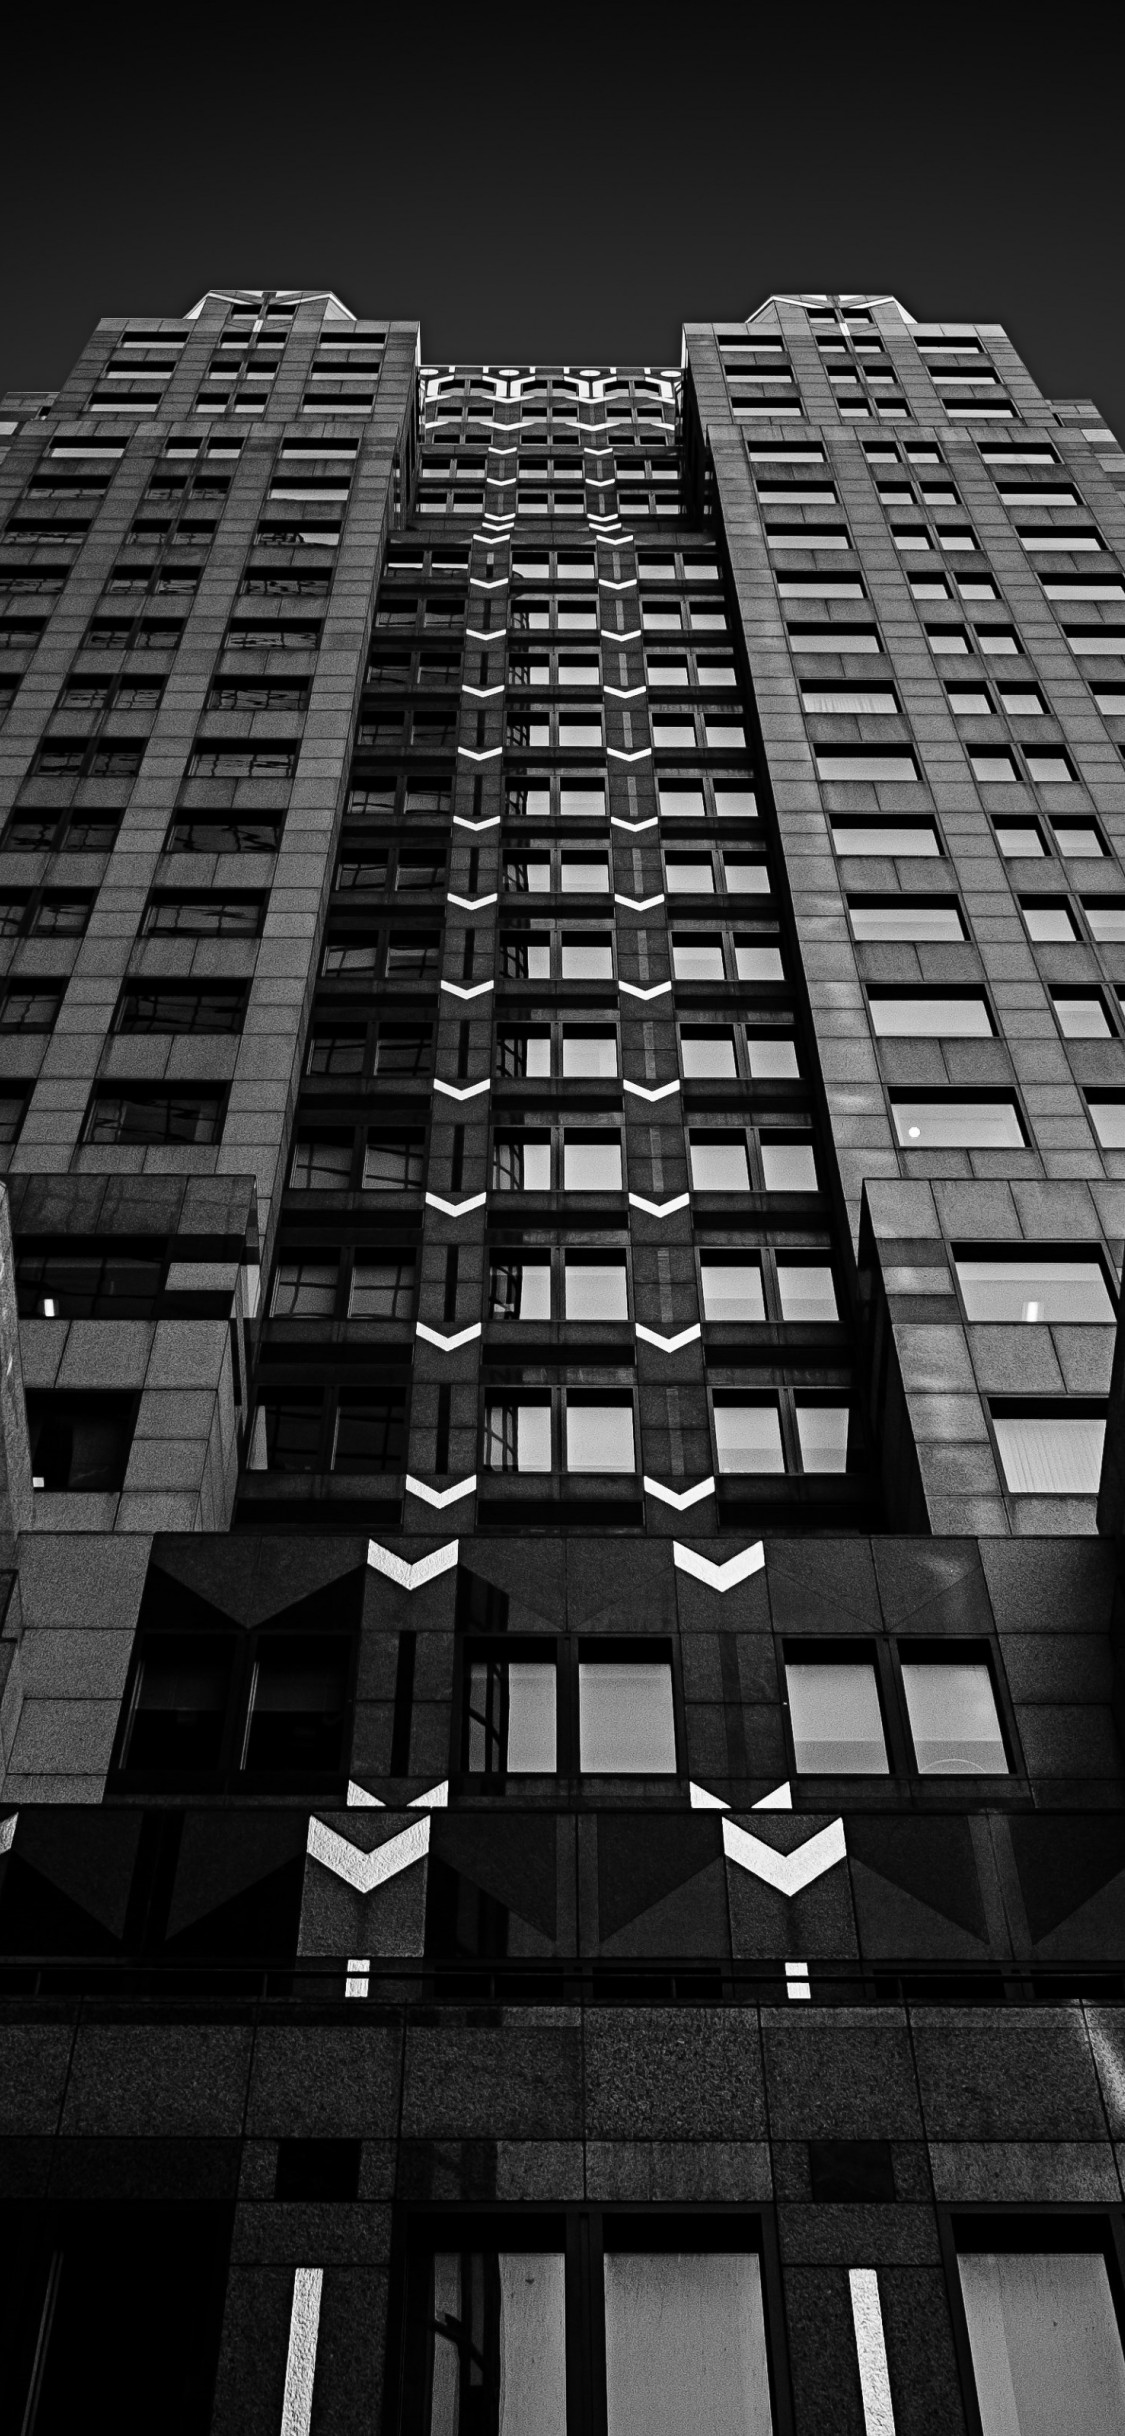 Urban Architecture wallpaper 1125x2436